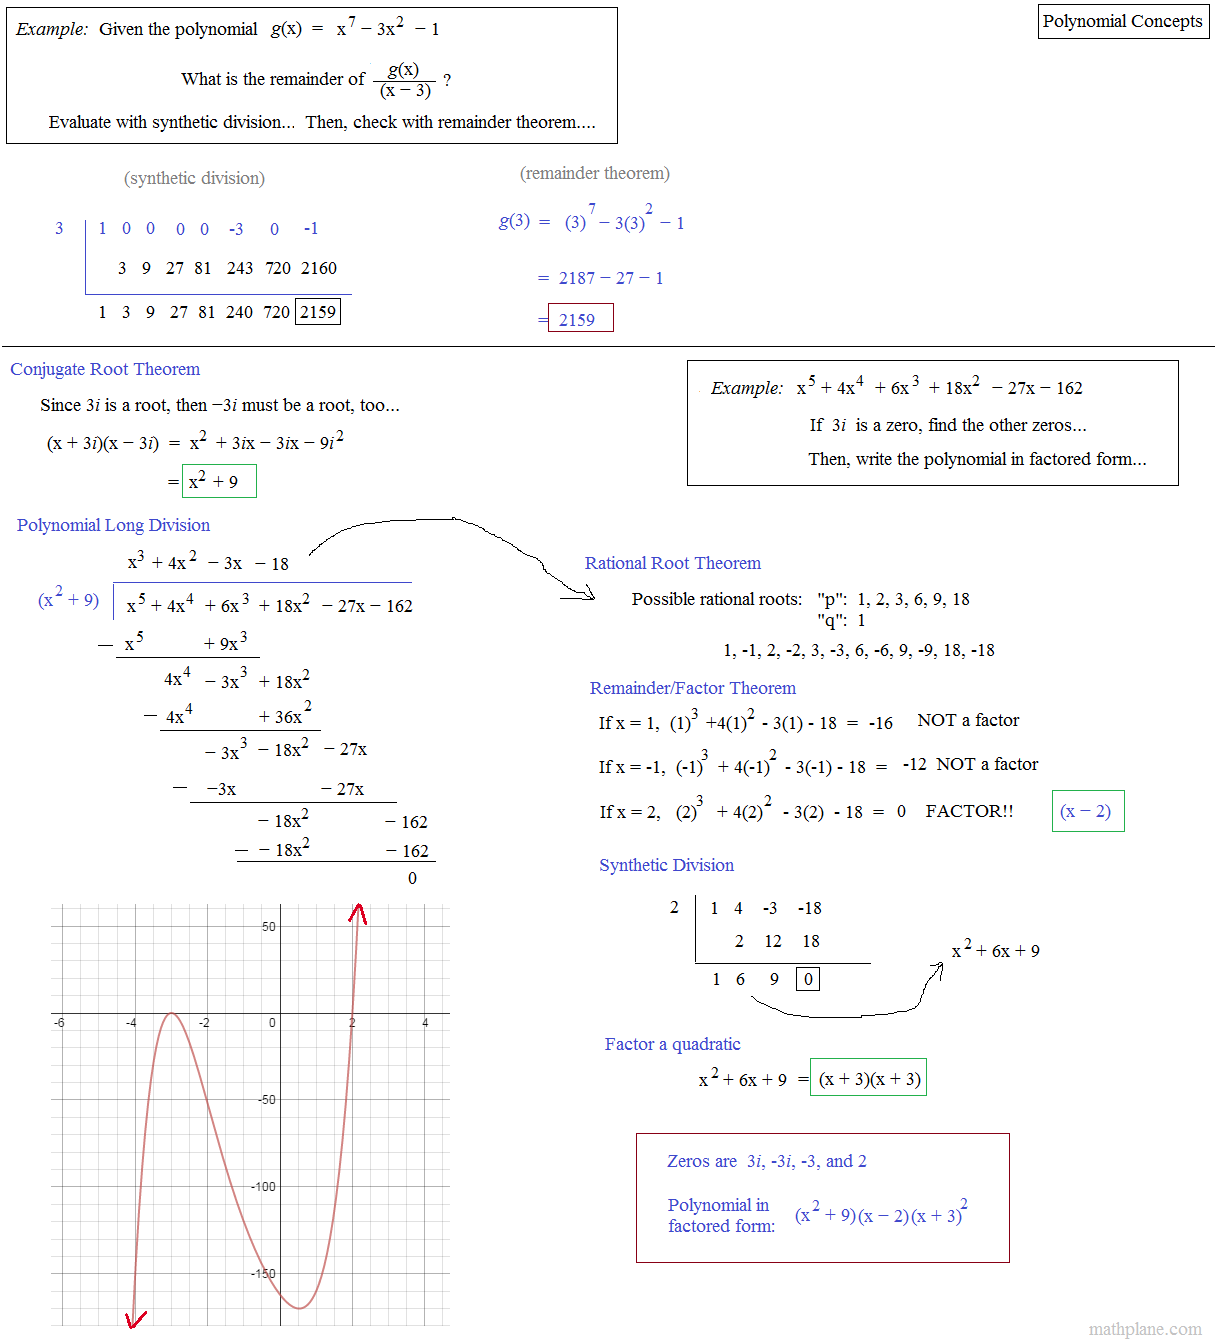 Math plane polynomials ii factors roots theorems polynomials factors and roots examples ccuart Image collections